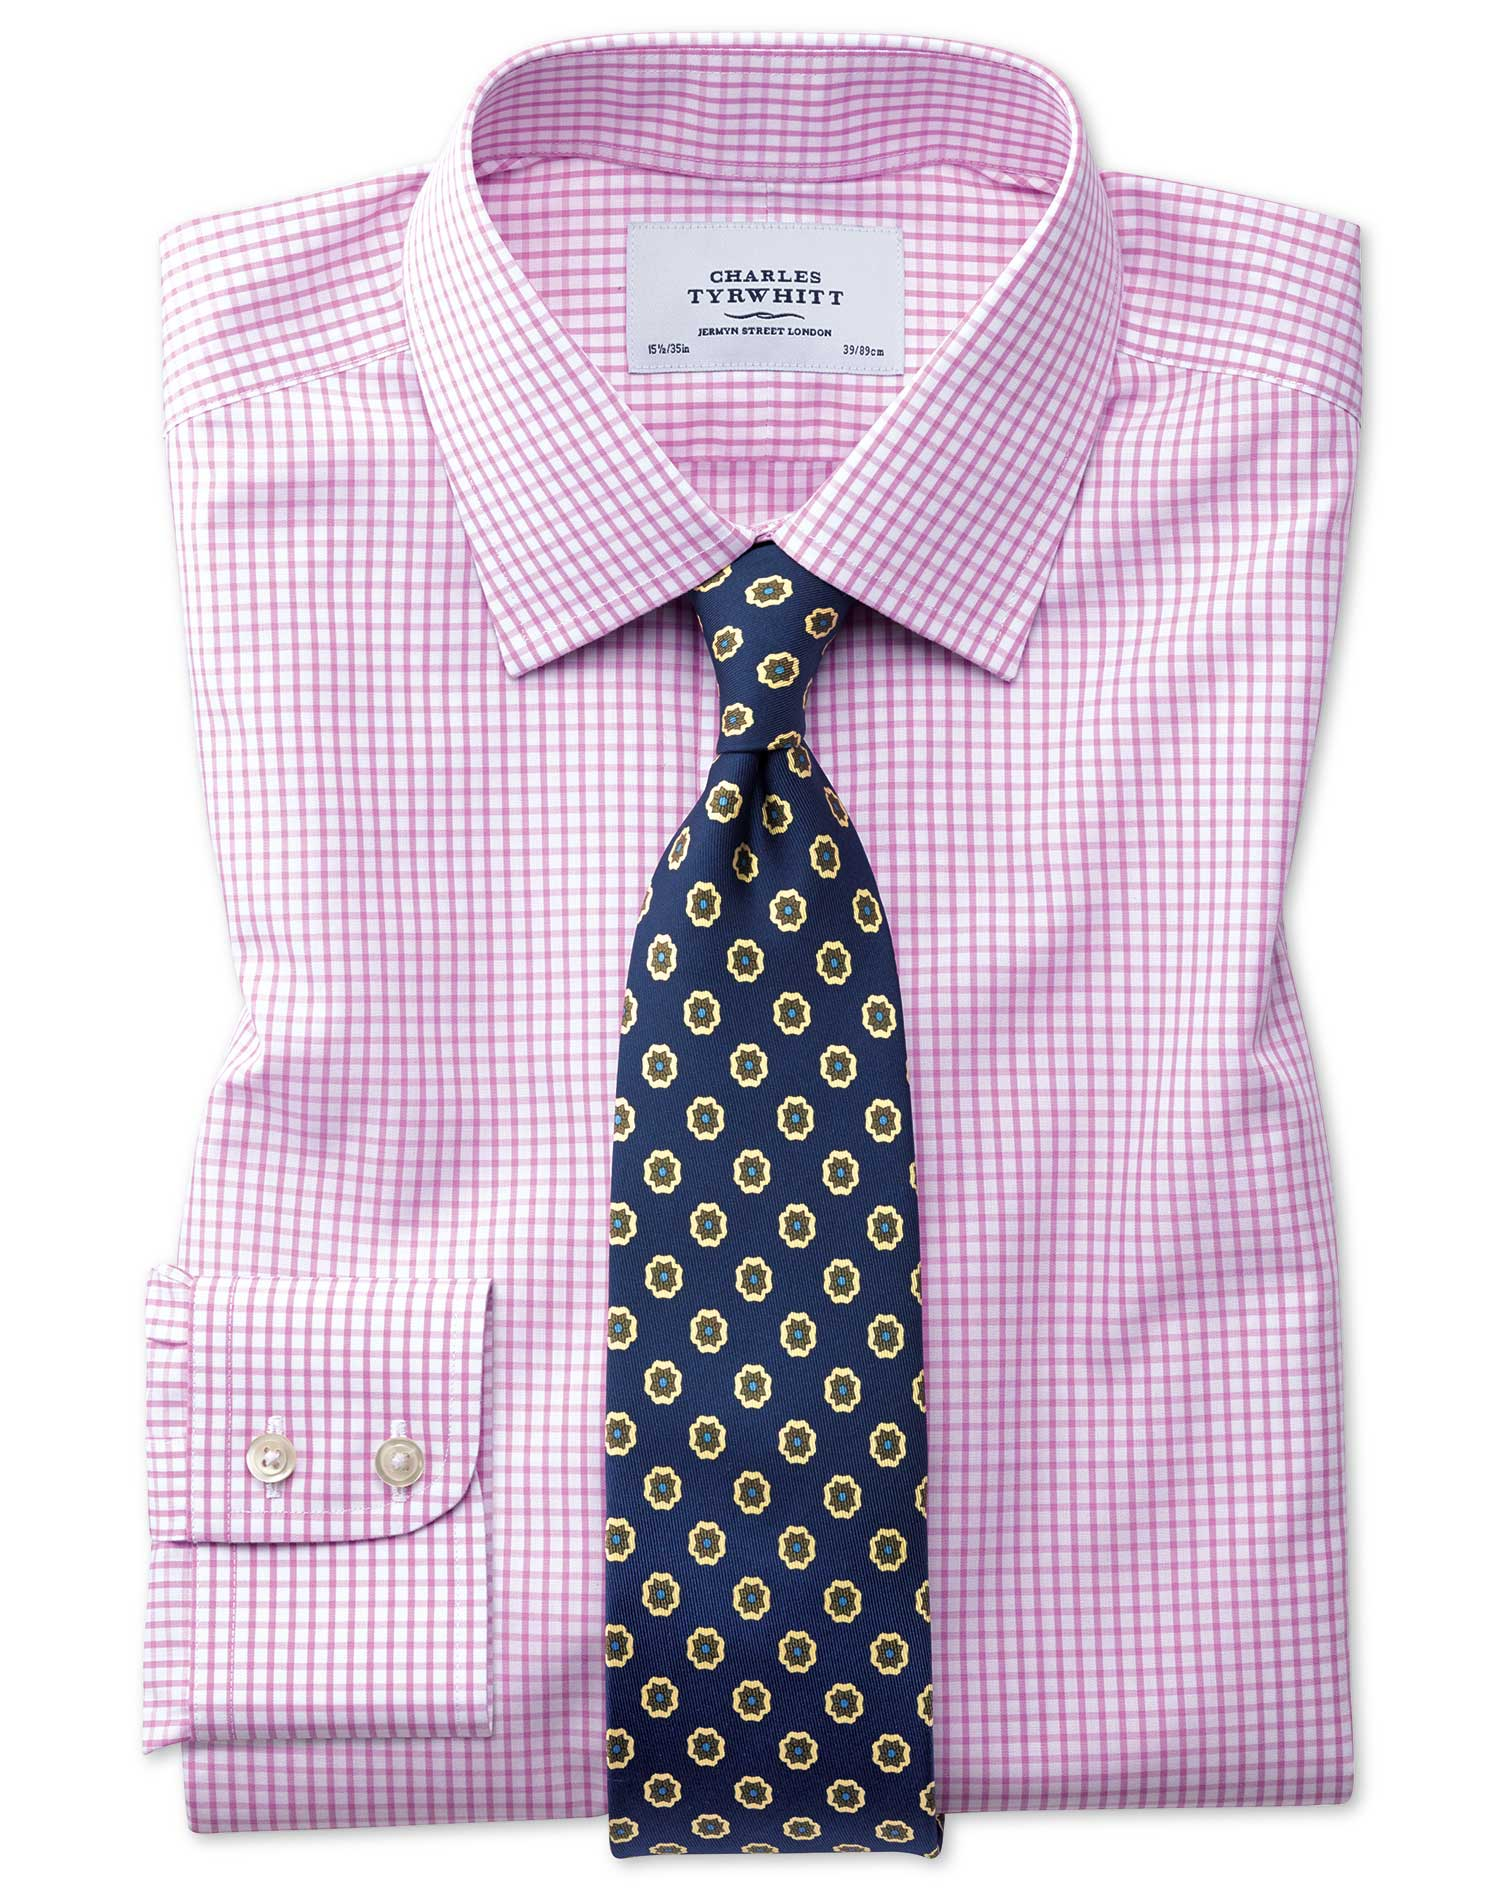 Slim Fit Non-Iron Grid Check Pink Cotton Formal Shirt Single Cuff Size 15.5/33 by Charles Tyrwhitt